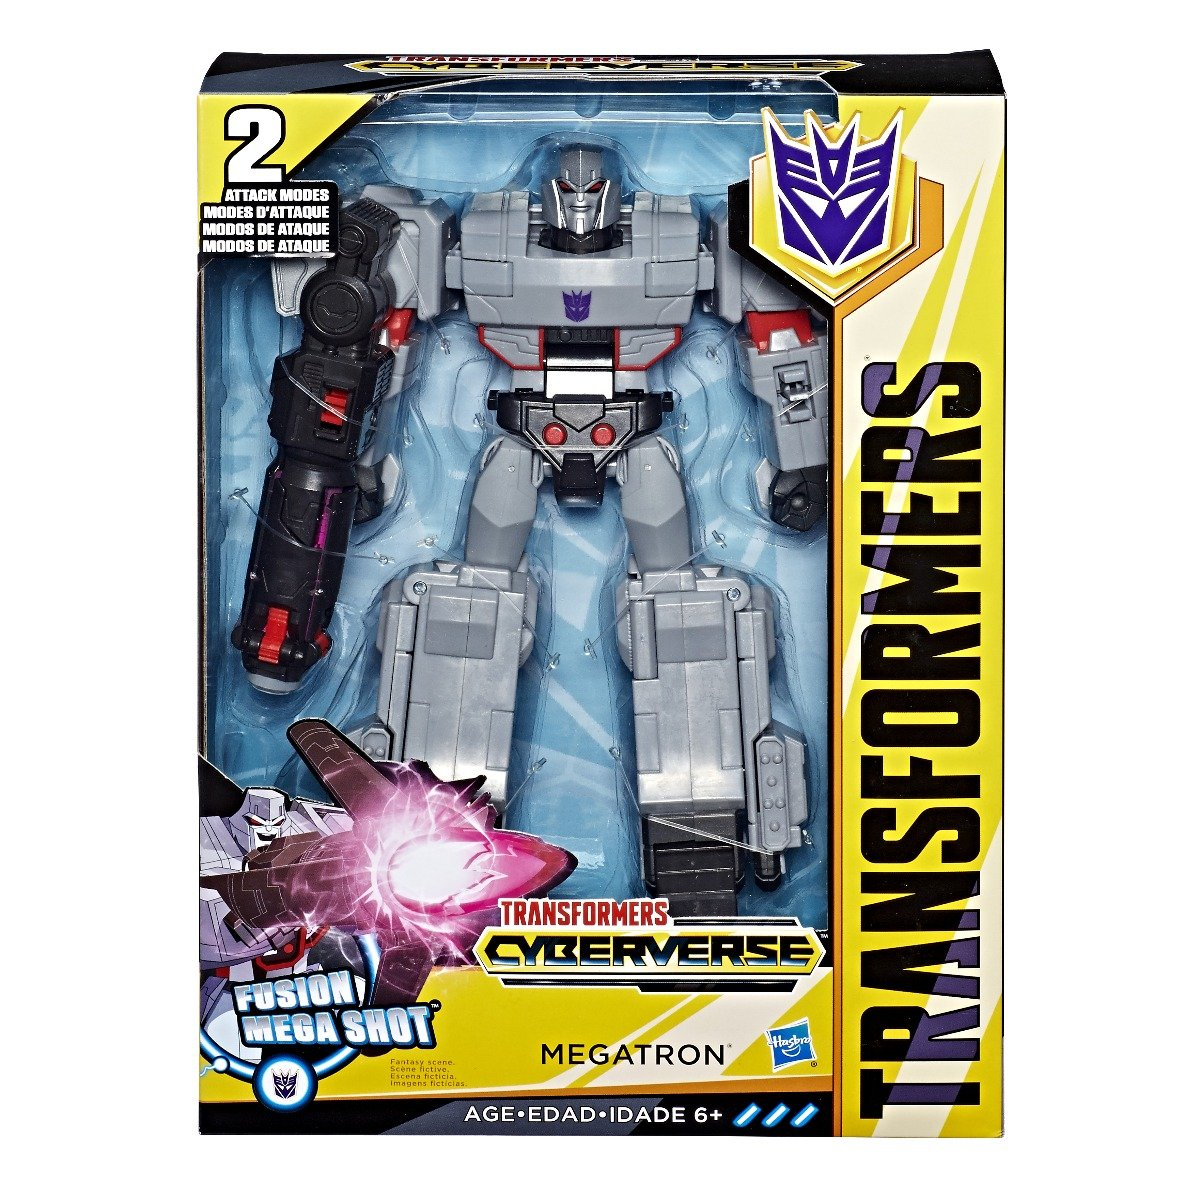 Figurina Transformers Cyberverse Action Attacker Ultimate Megatron